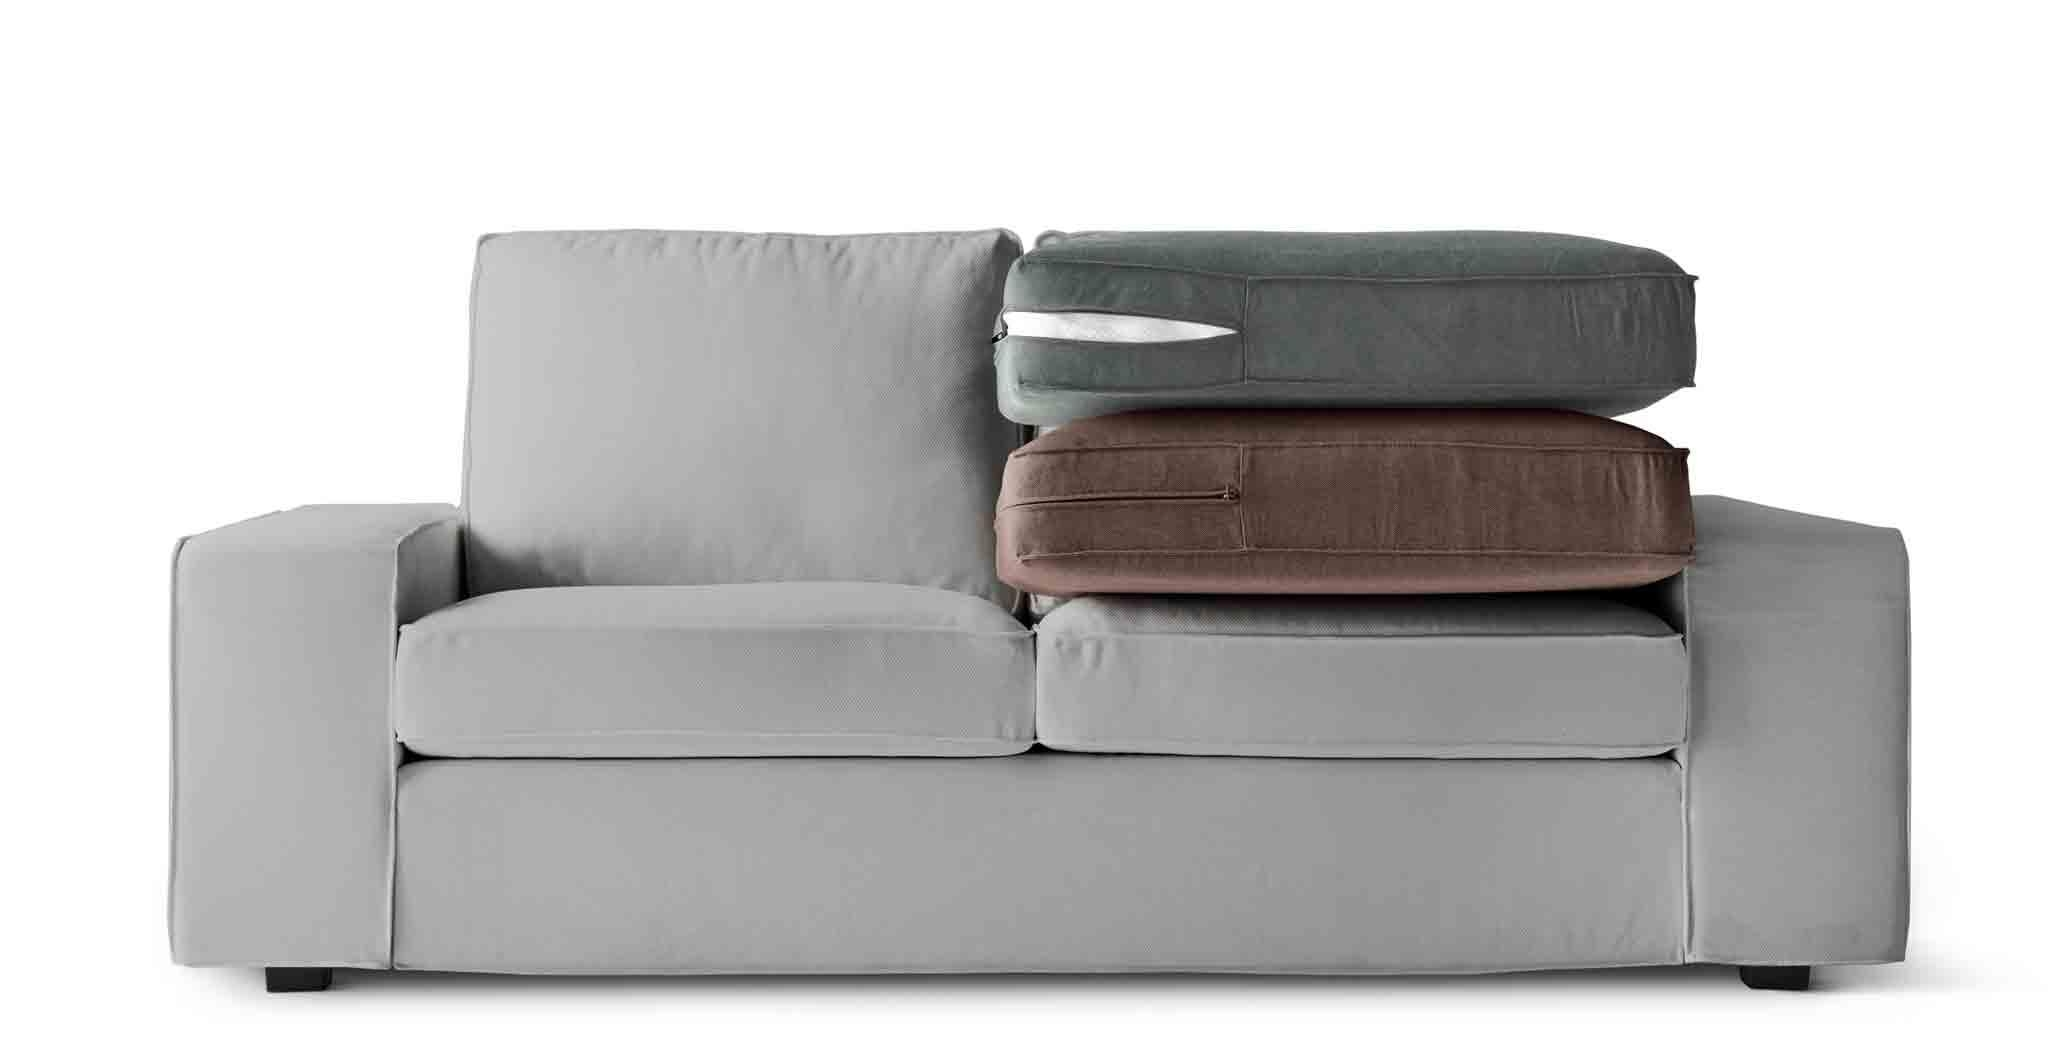 Sofa Covers | Ikea Regarding Sofa With Removable Cover (View 14 of 20)